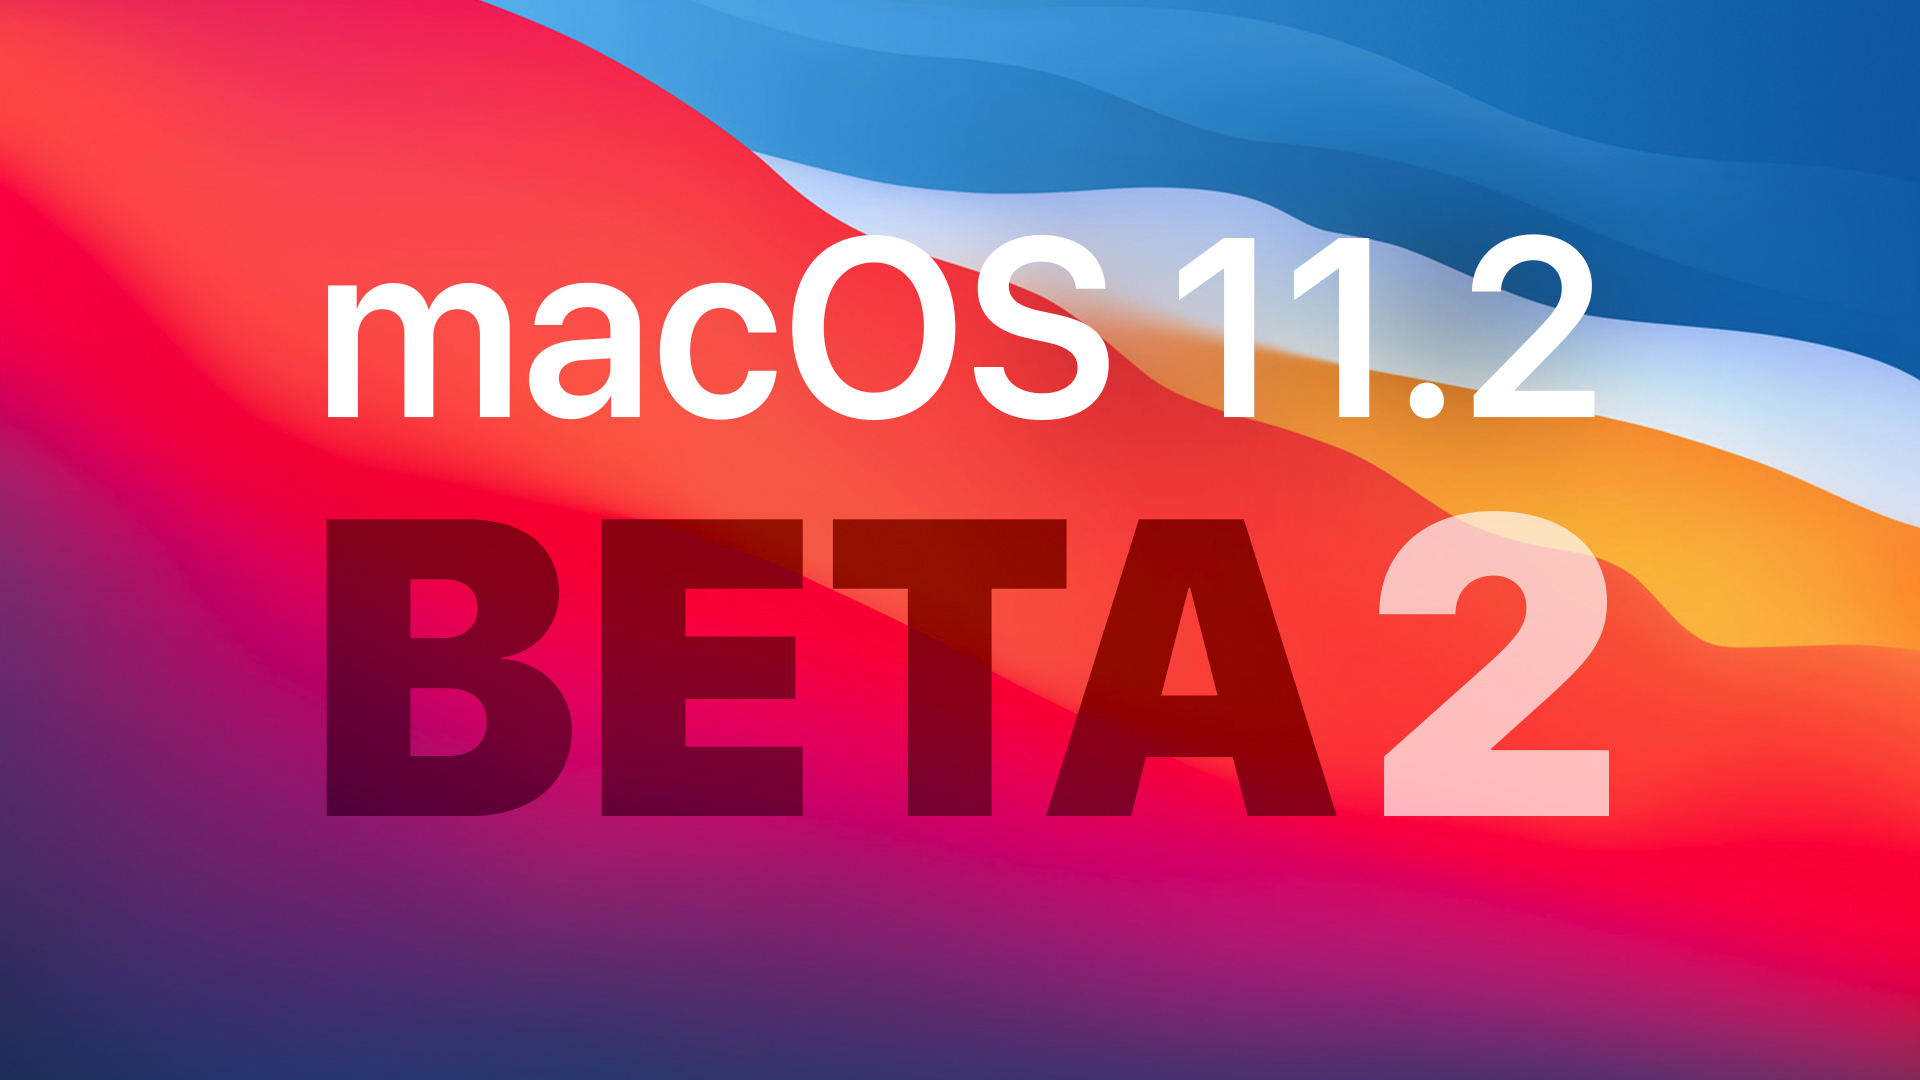 Apple Seeds Second Beta of macOS Big Sur 11.2 to Developers [Update: Public Beta Available]